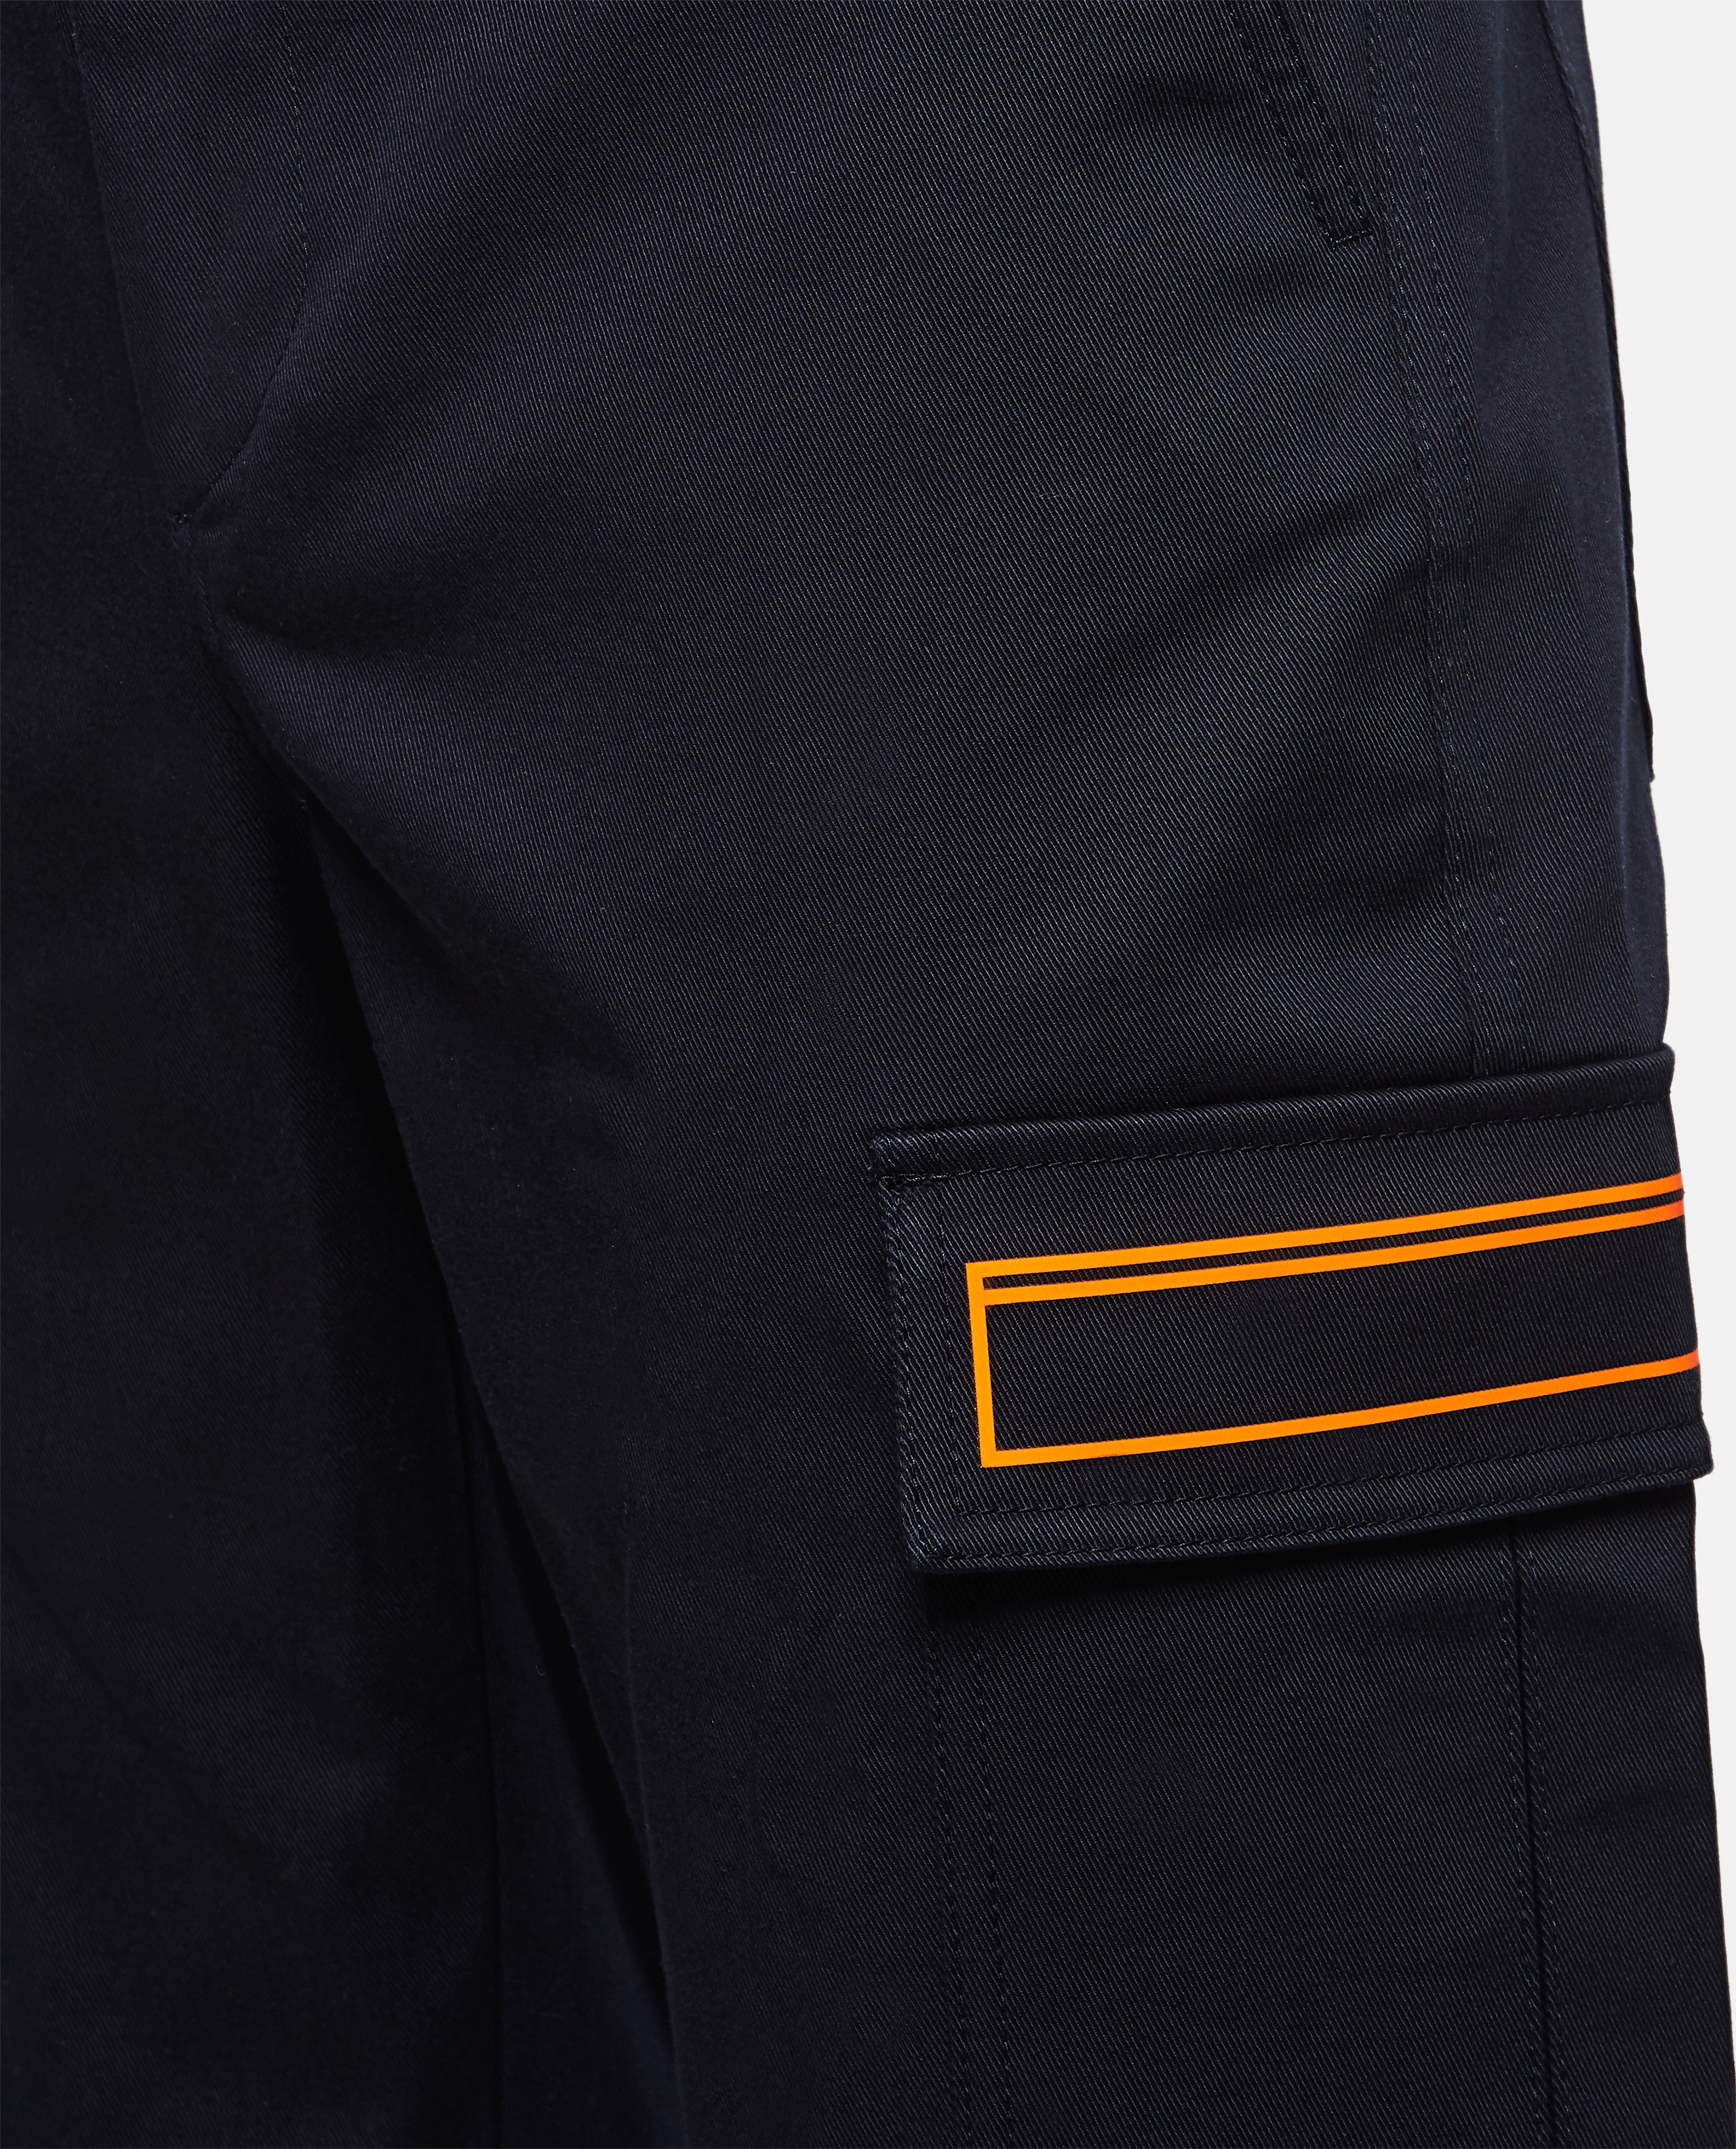 Trousers with contrasting detail Men Valentino 000263550038963 4